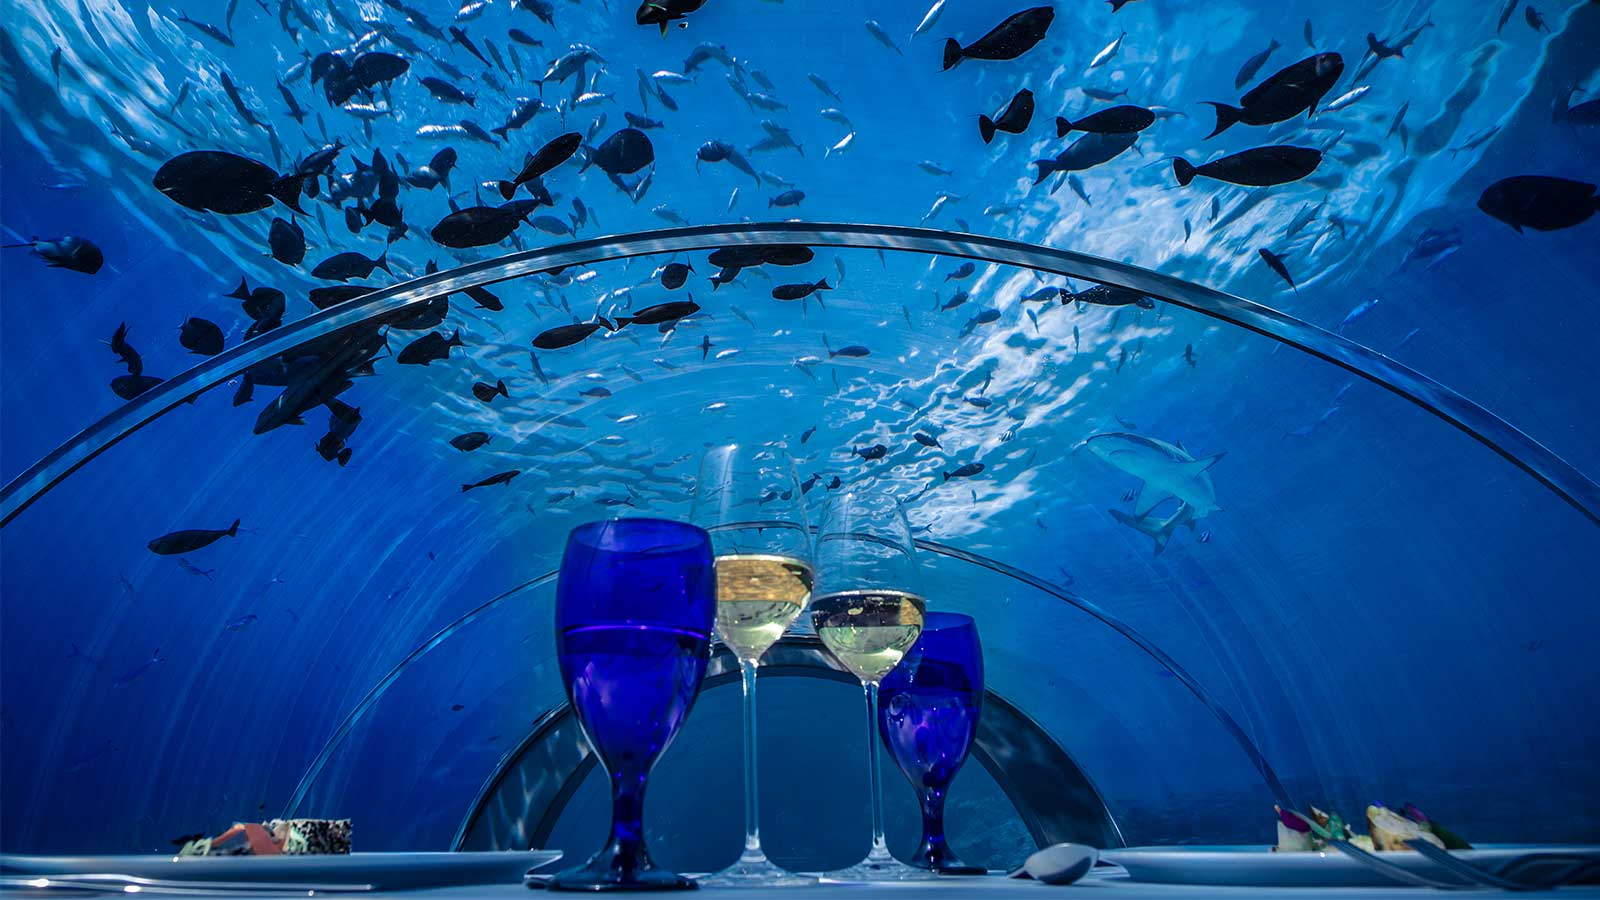 Maldives Set To Open The Worlds Biggest Underwater Restaurant In - Take a look inside europes first underwater restaurant